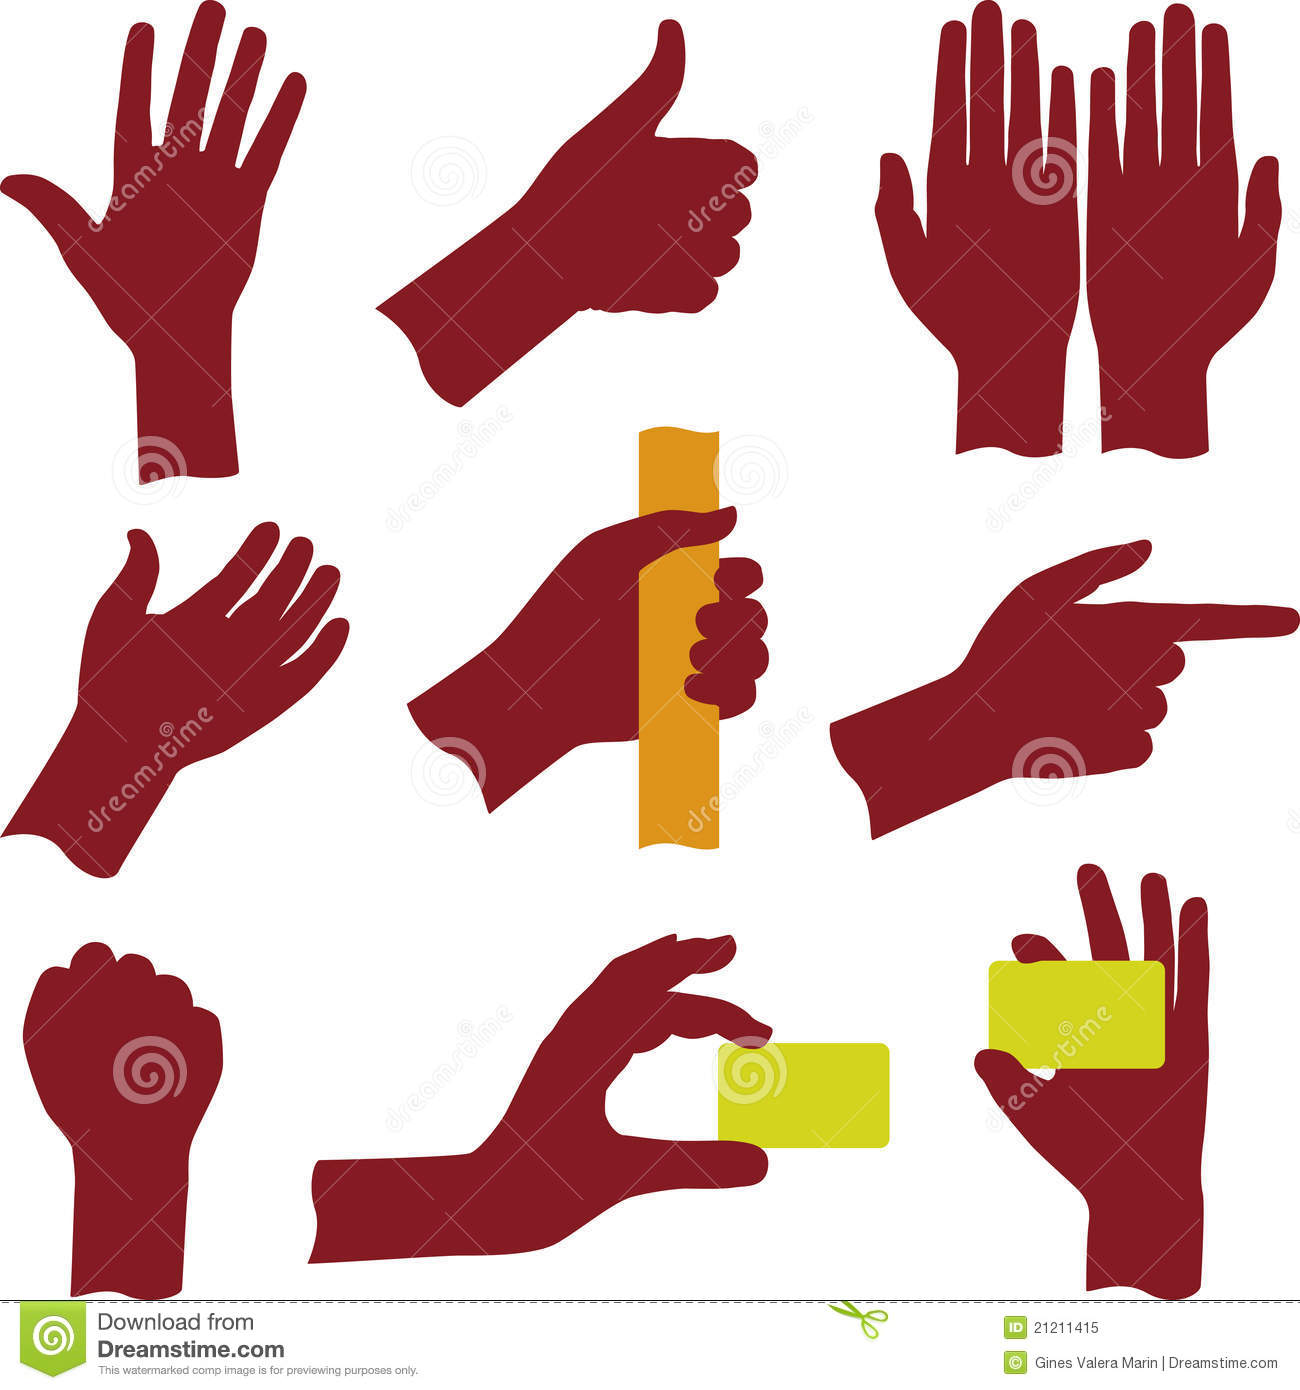 Hands (vector) Royalty Free Stock Photo - Image: 21211415